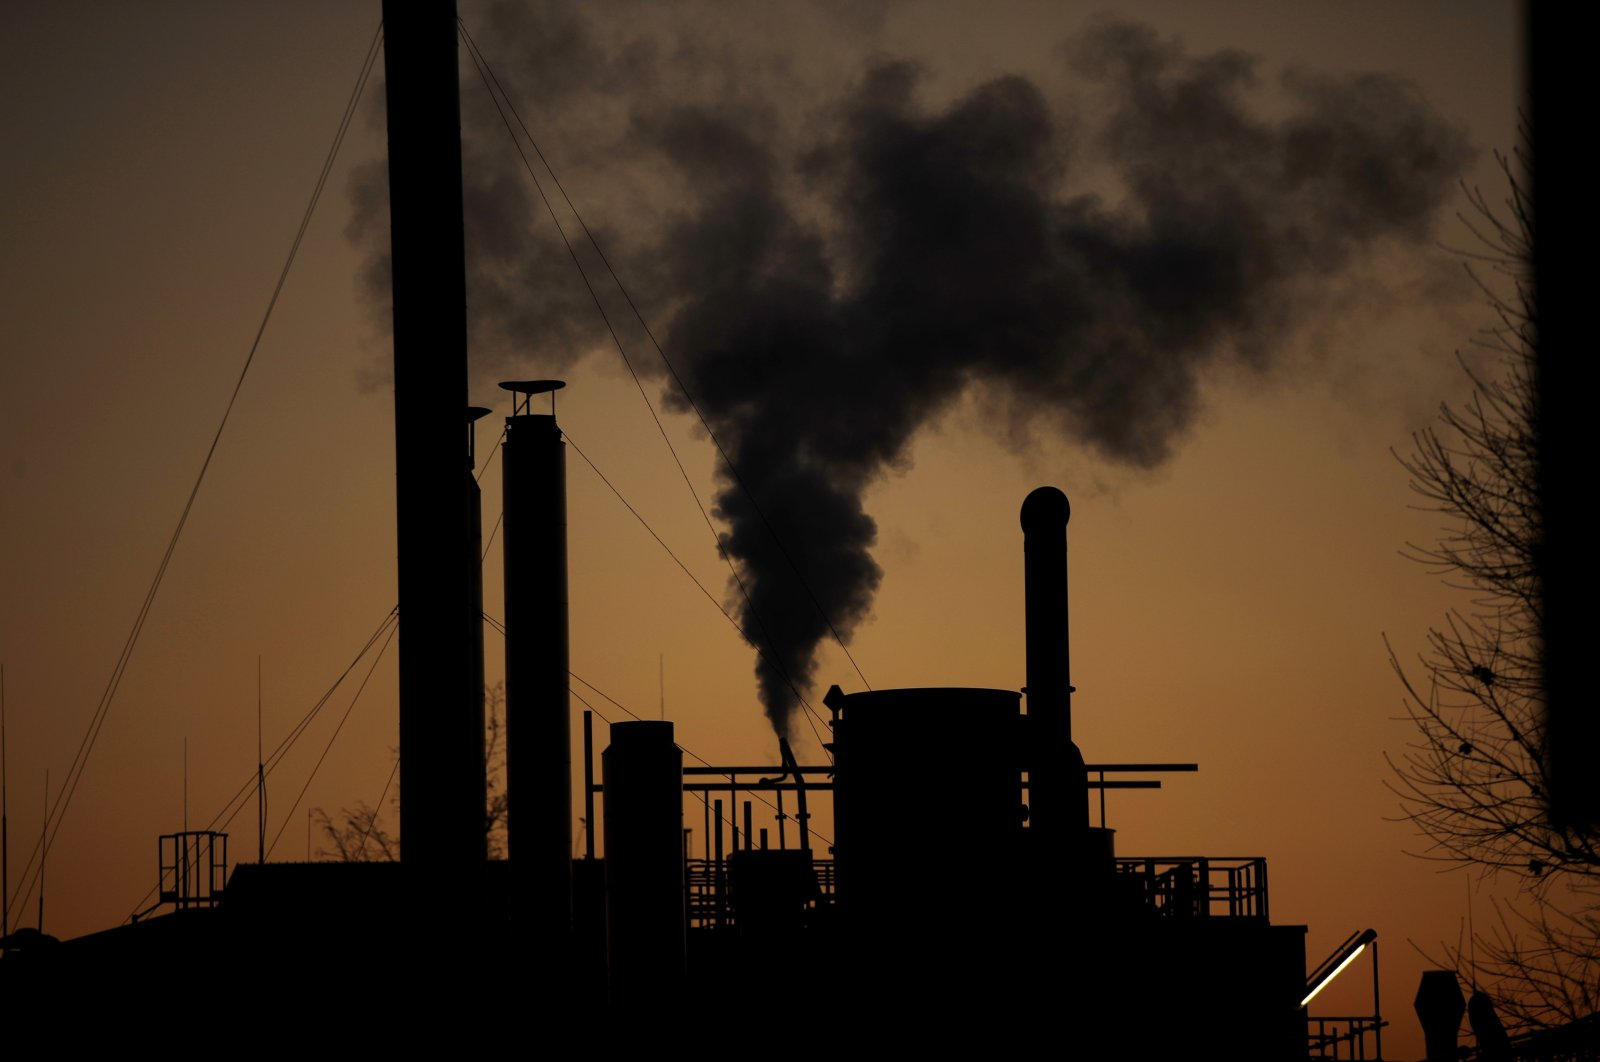 Smoke billows from a chimney of a factory, in Ospiate, near Milan, Italy, Dec. 14, 2018. (AP Photo)